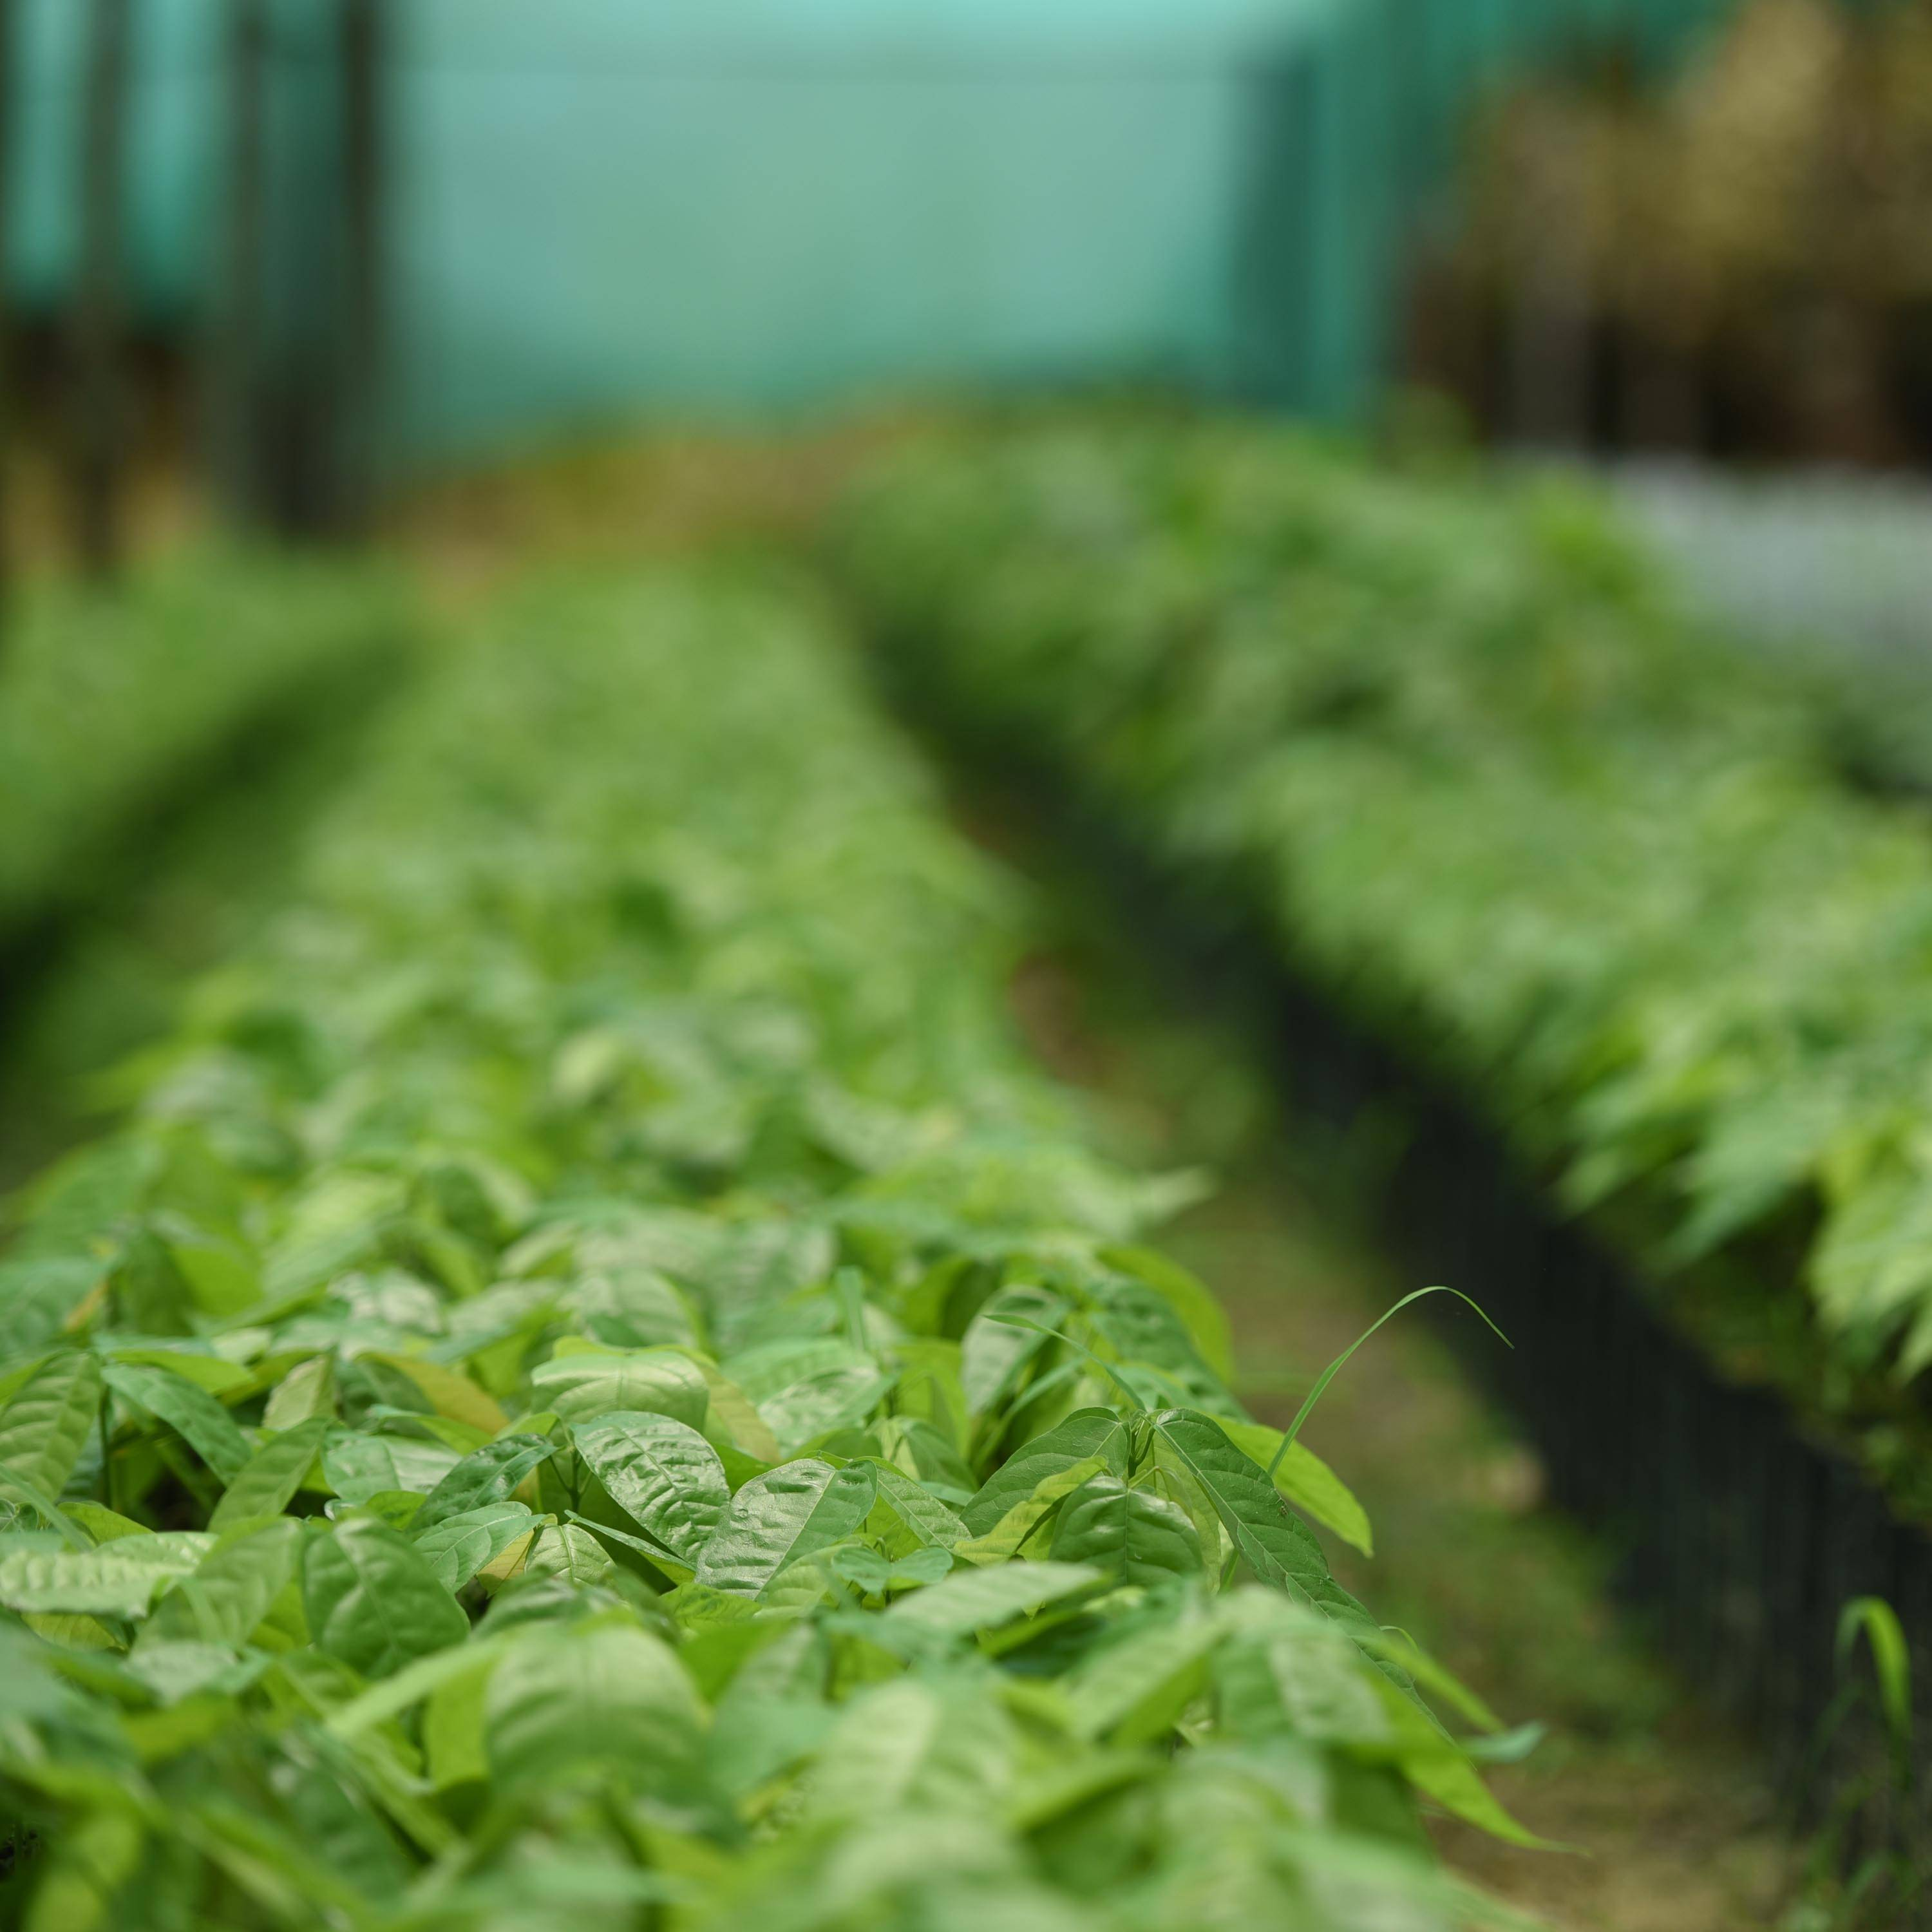 Rows of green plants image